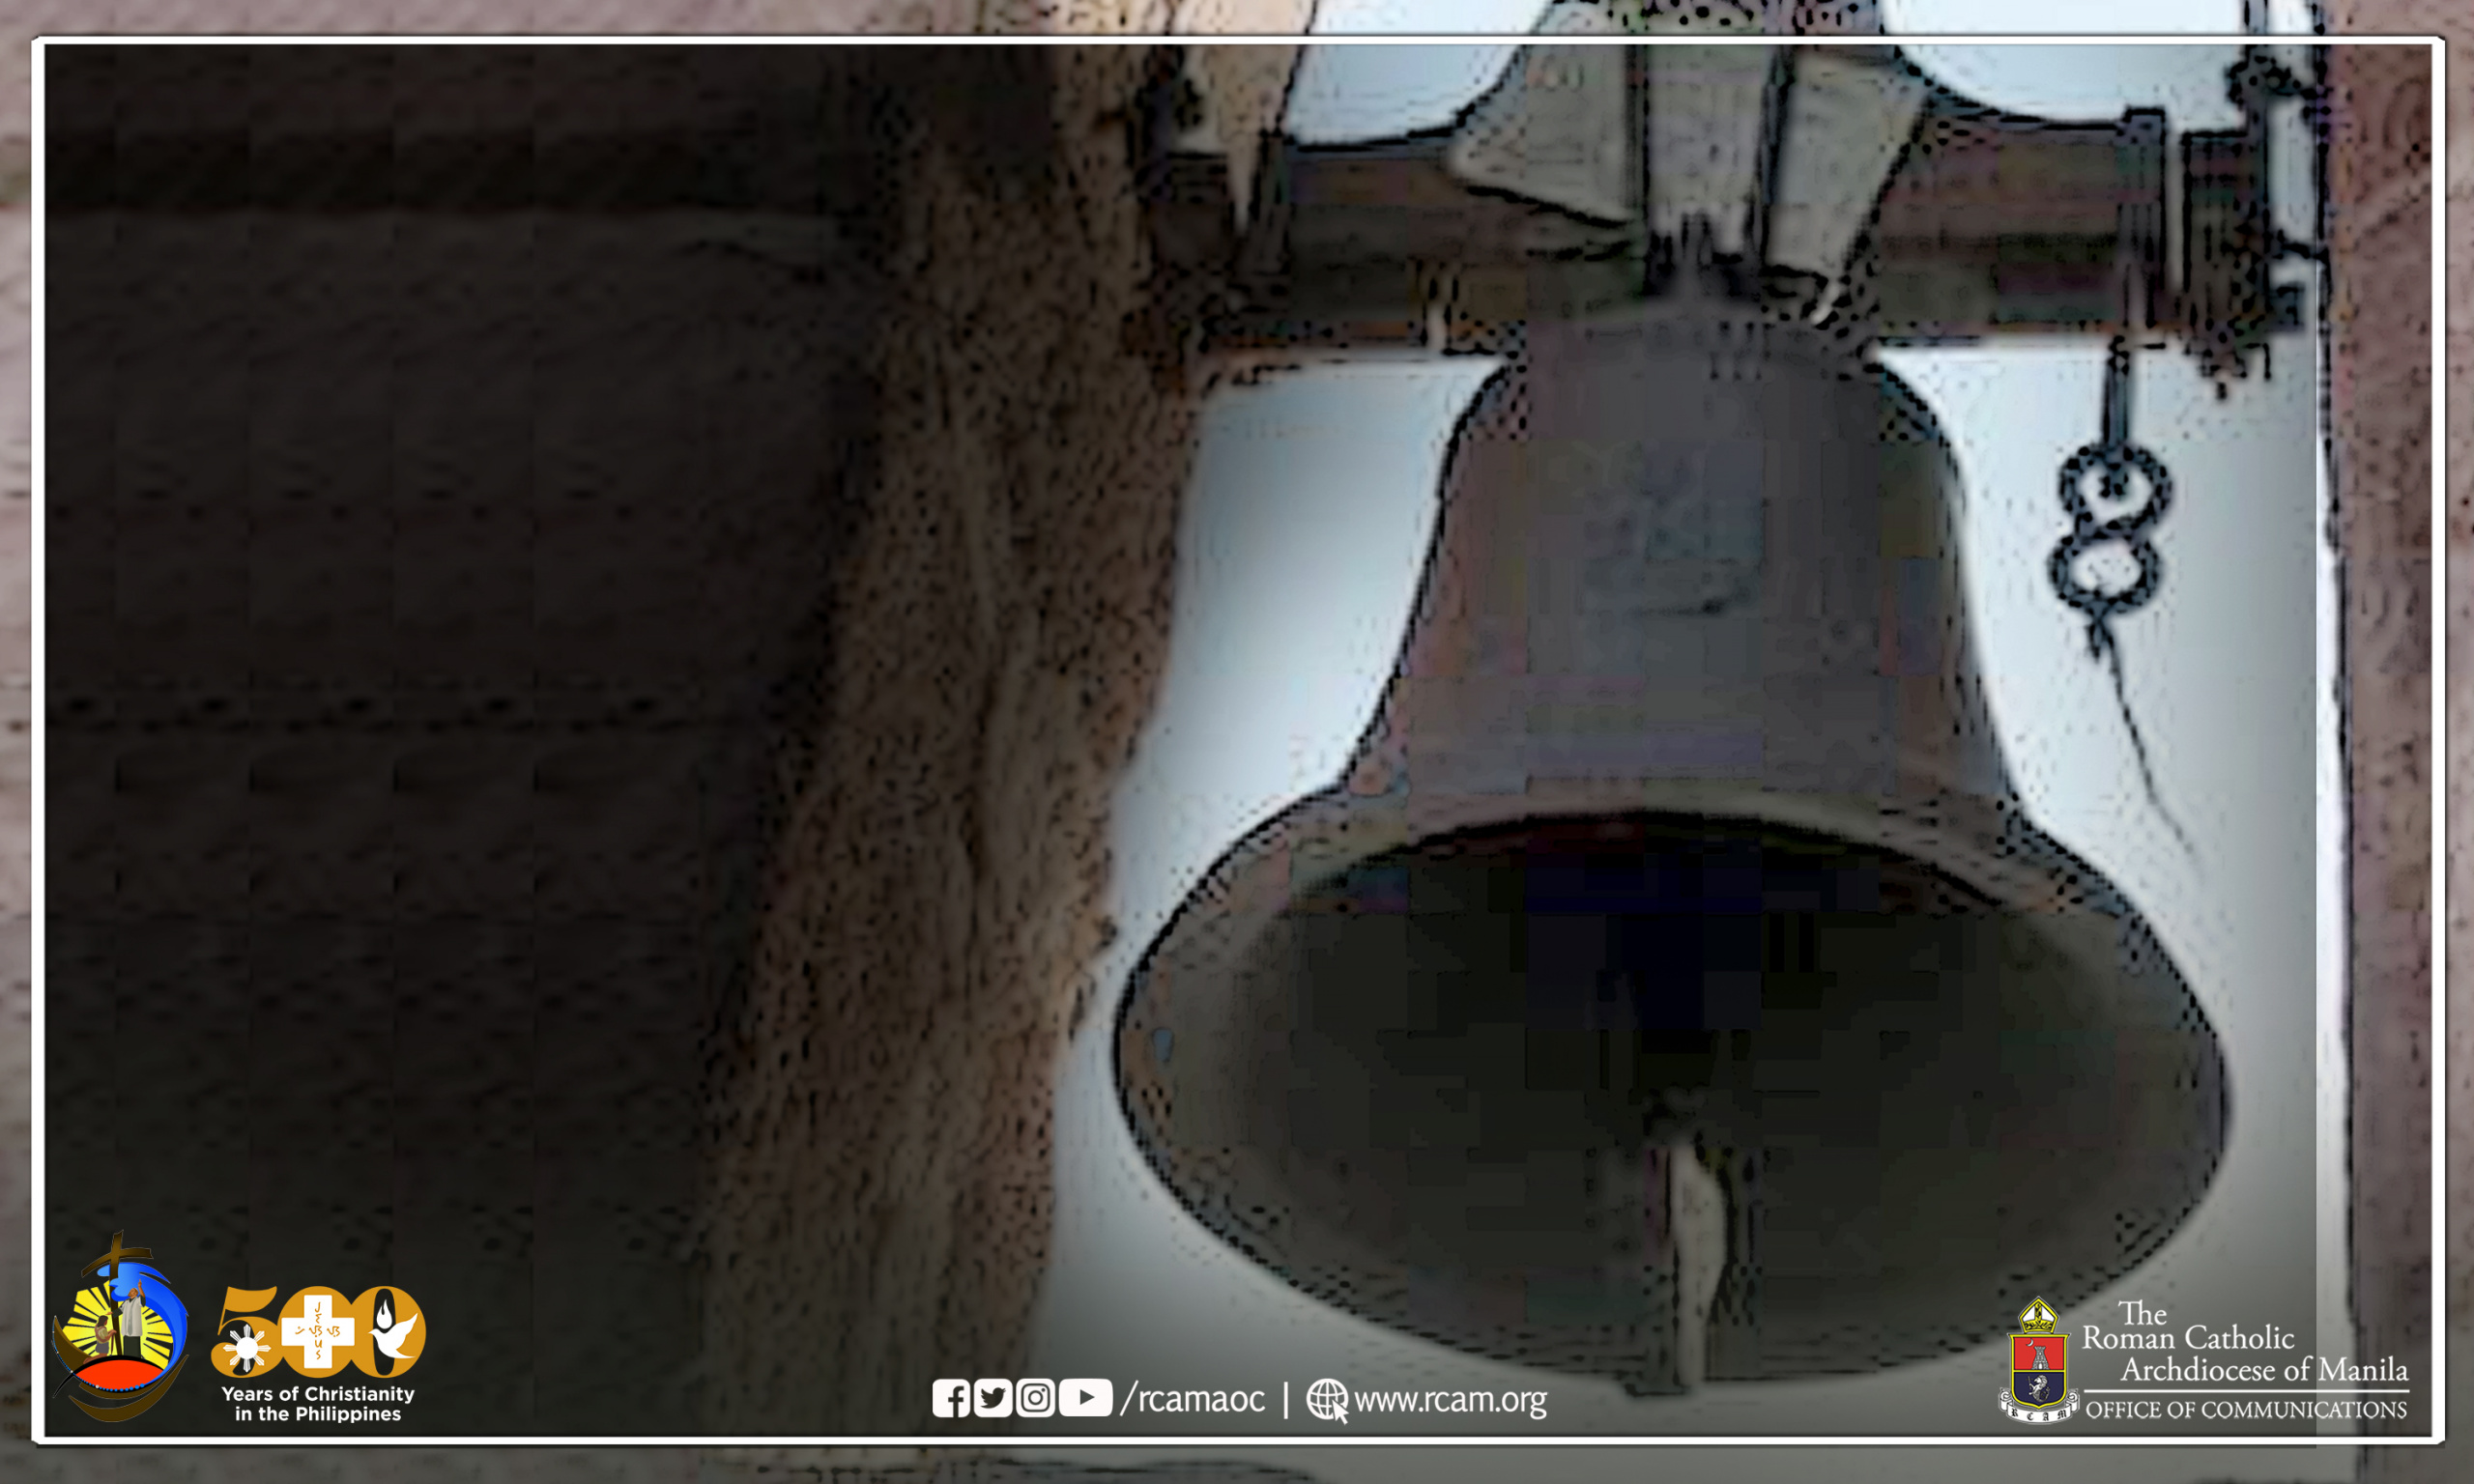 Church Bells to ring for May 2022 Elections